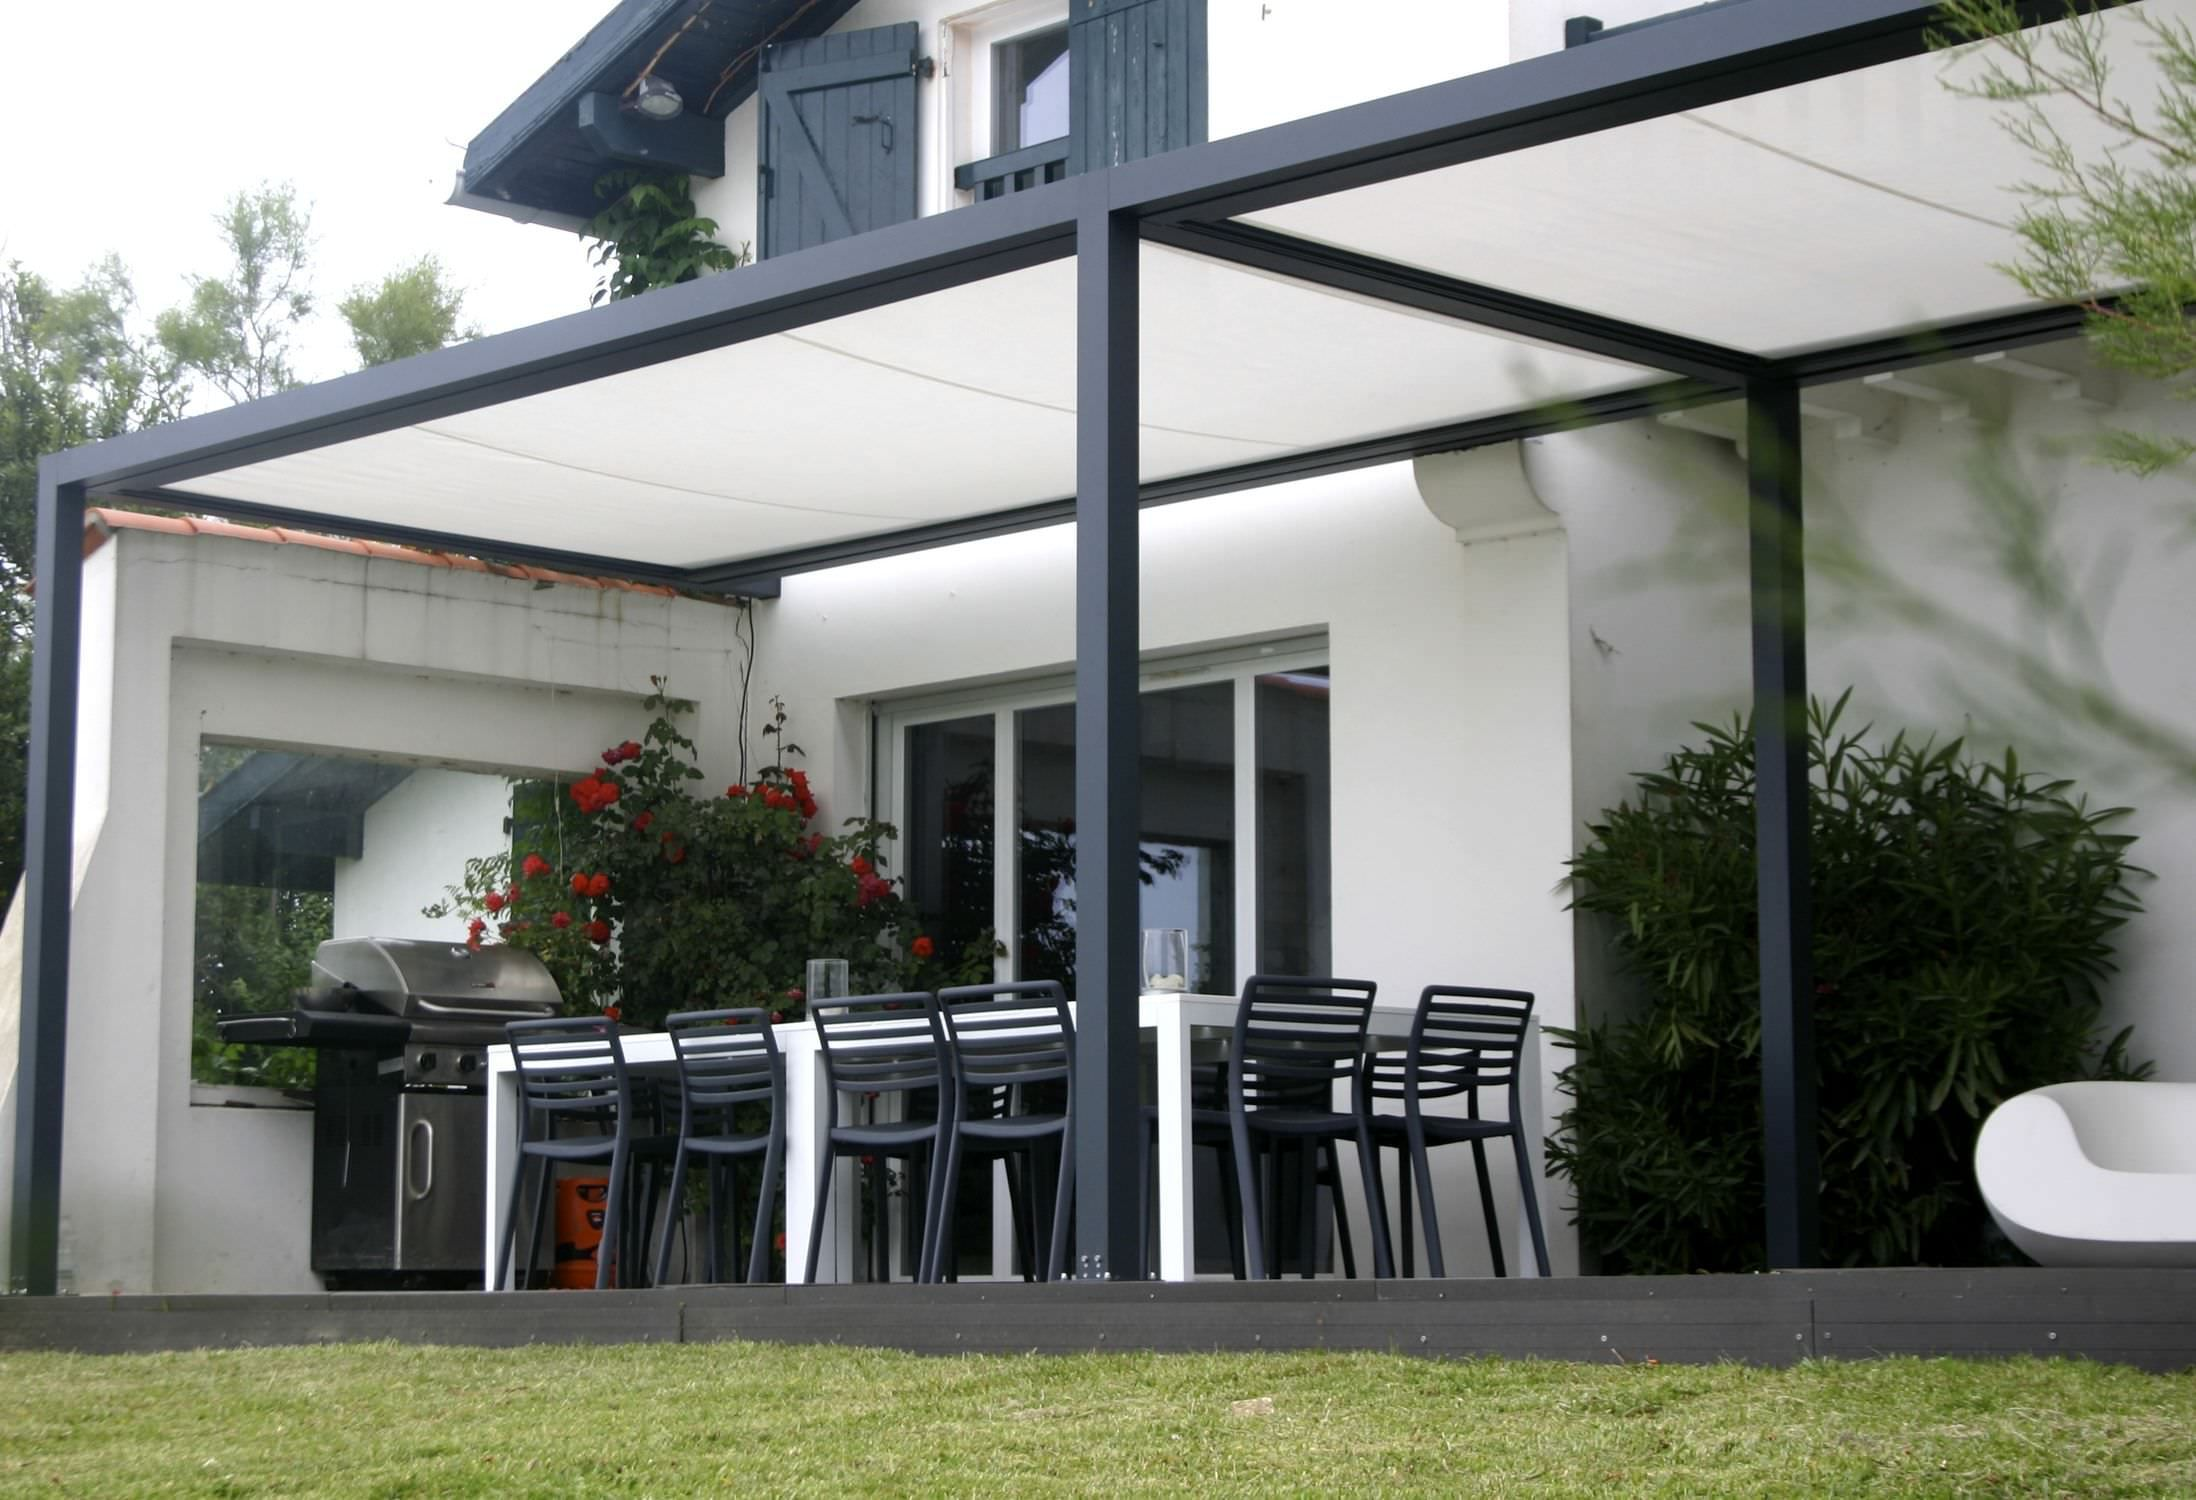 Design Terrasse Self Supporting Pergola Aluminium Pvc Fabric Sliding